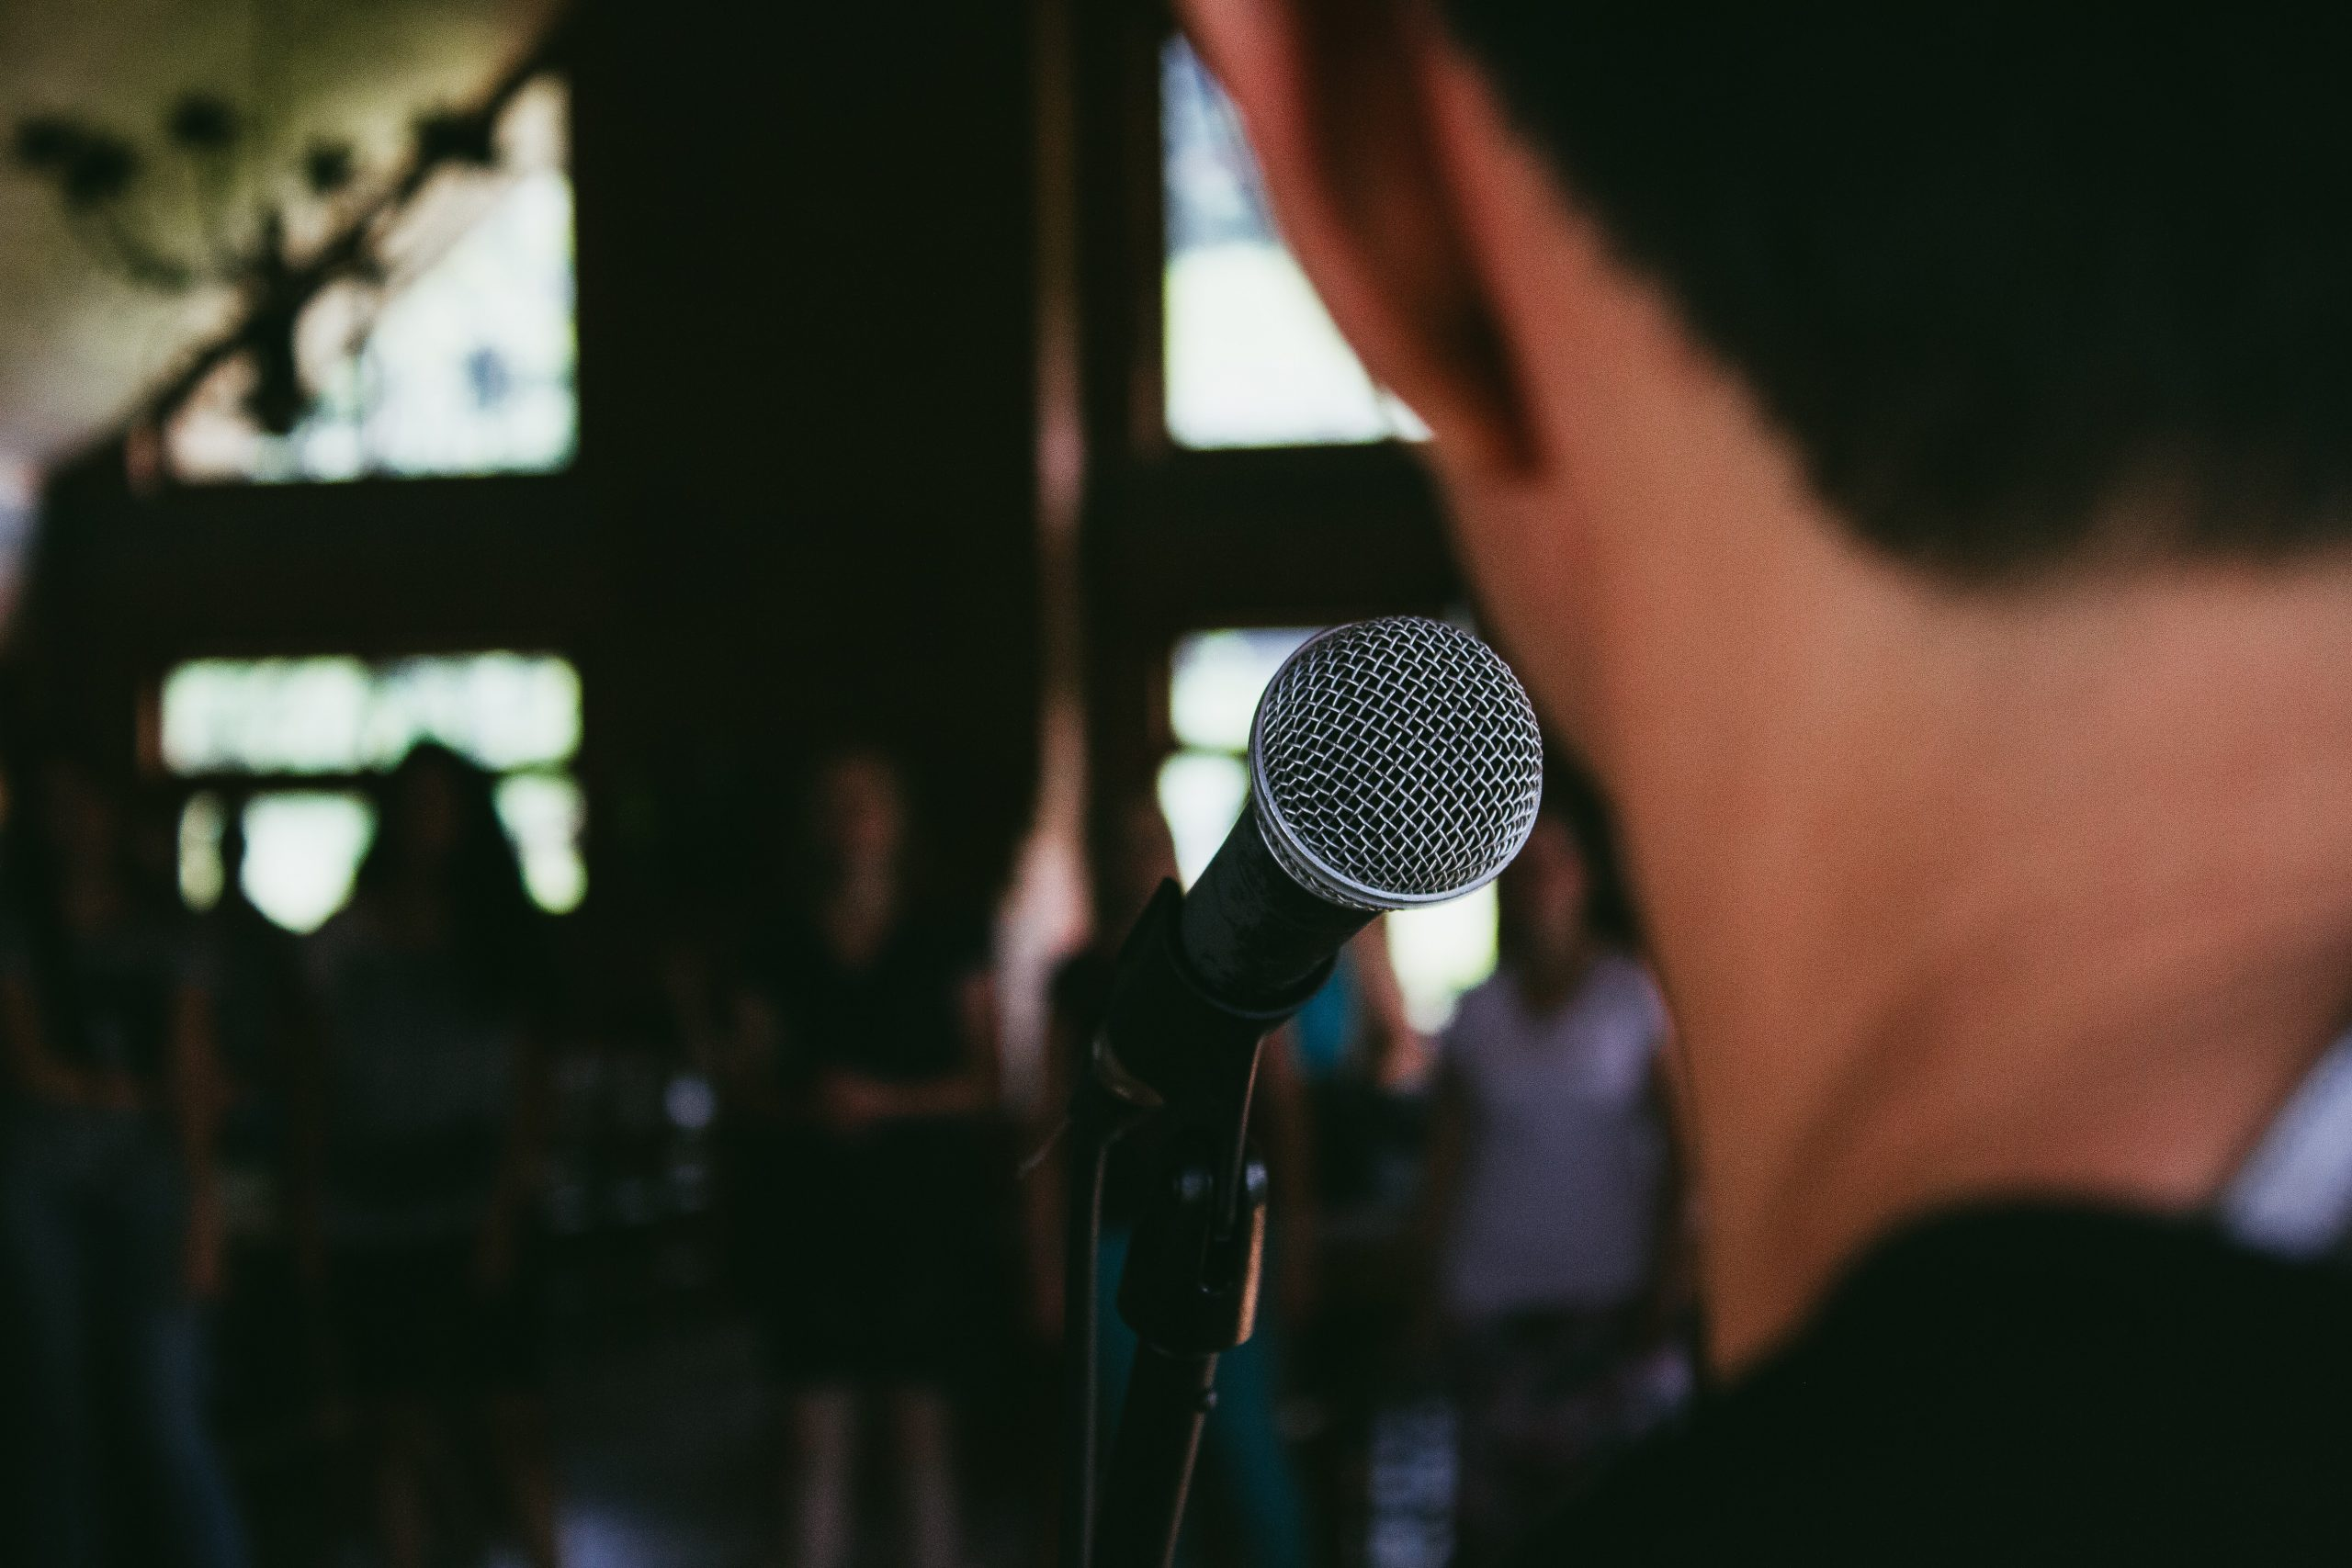 Developing confidence in public speaking